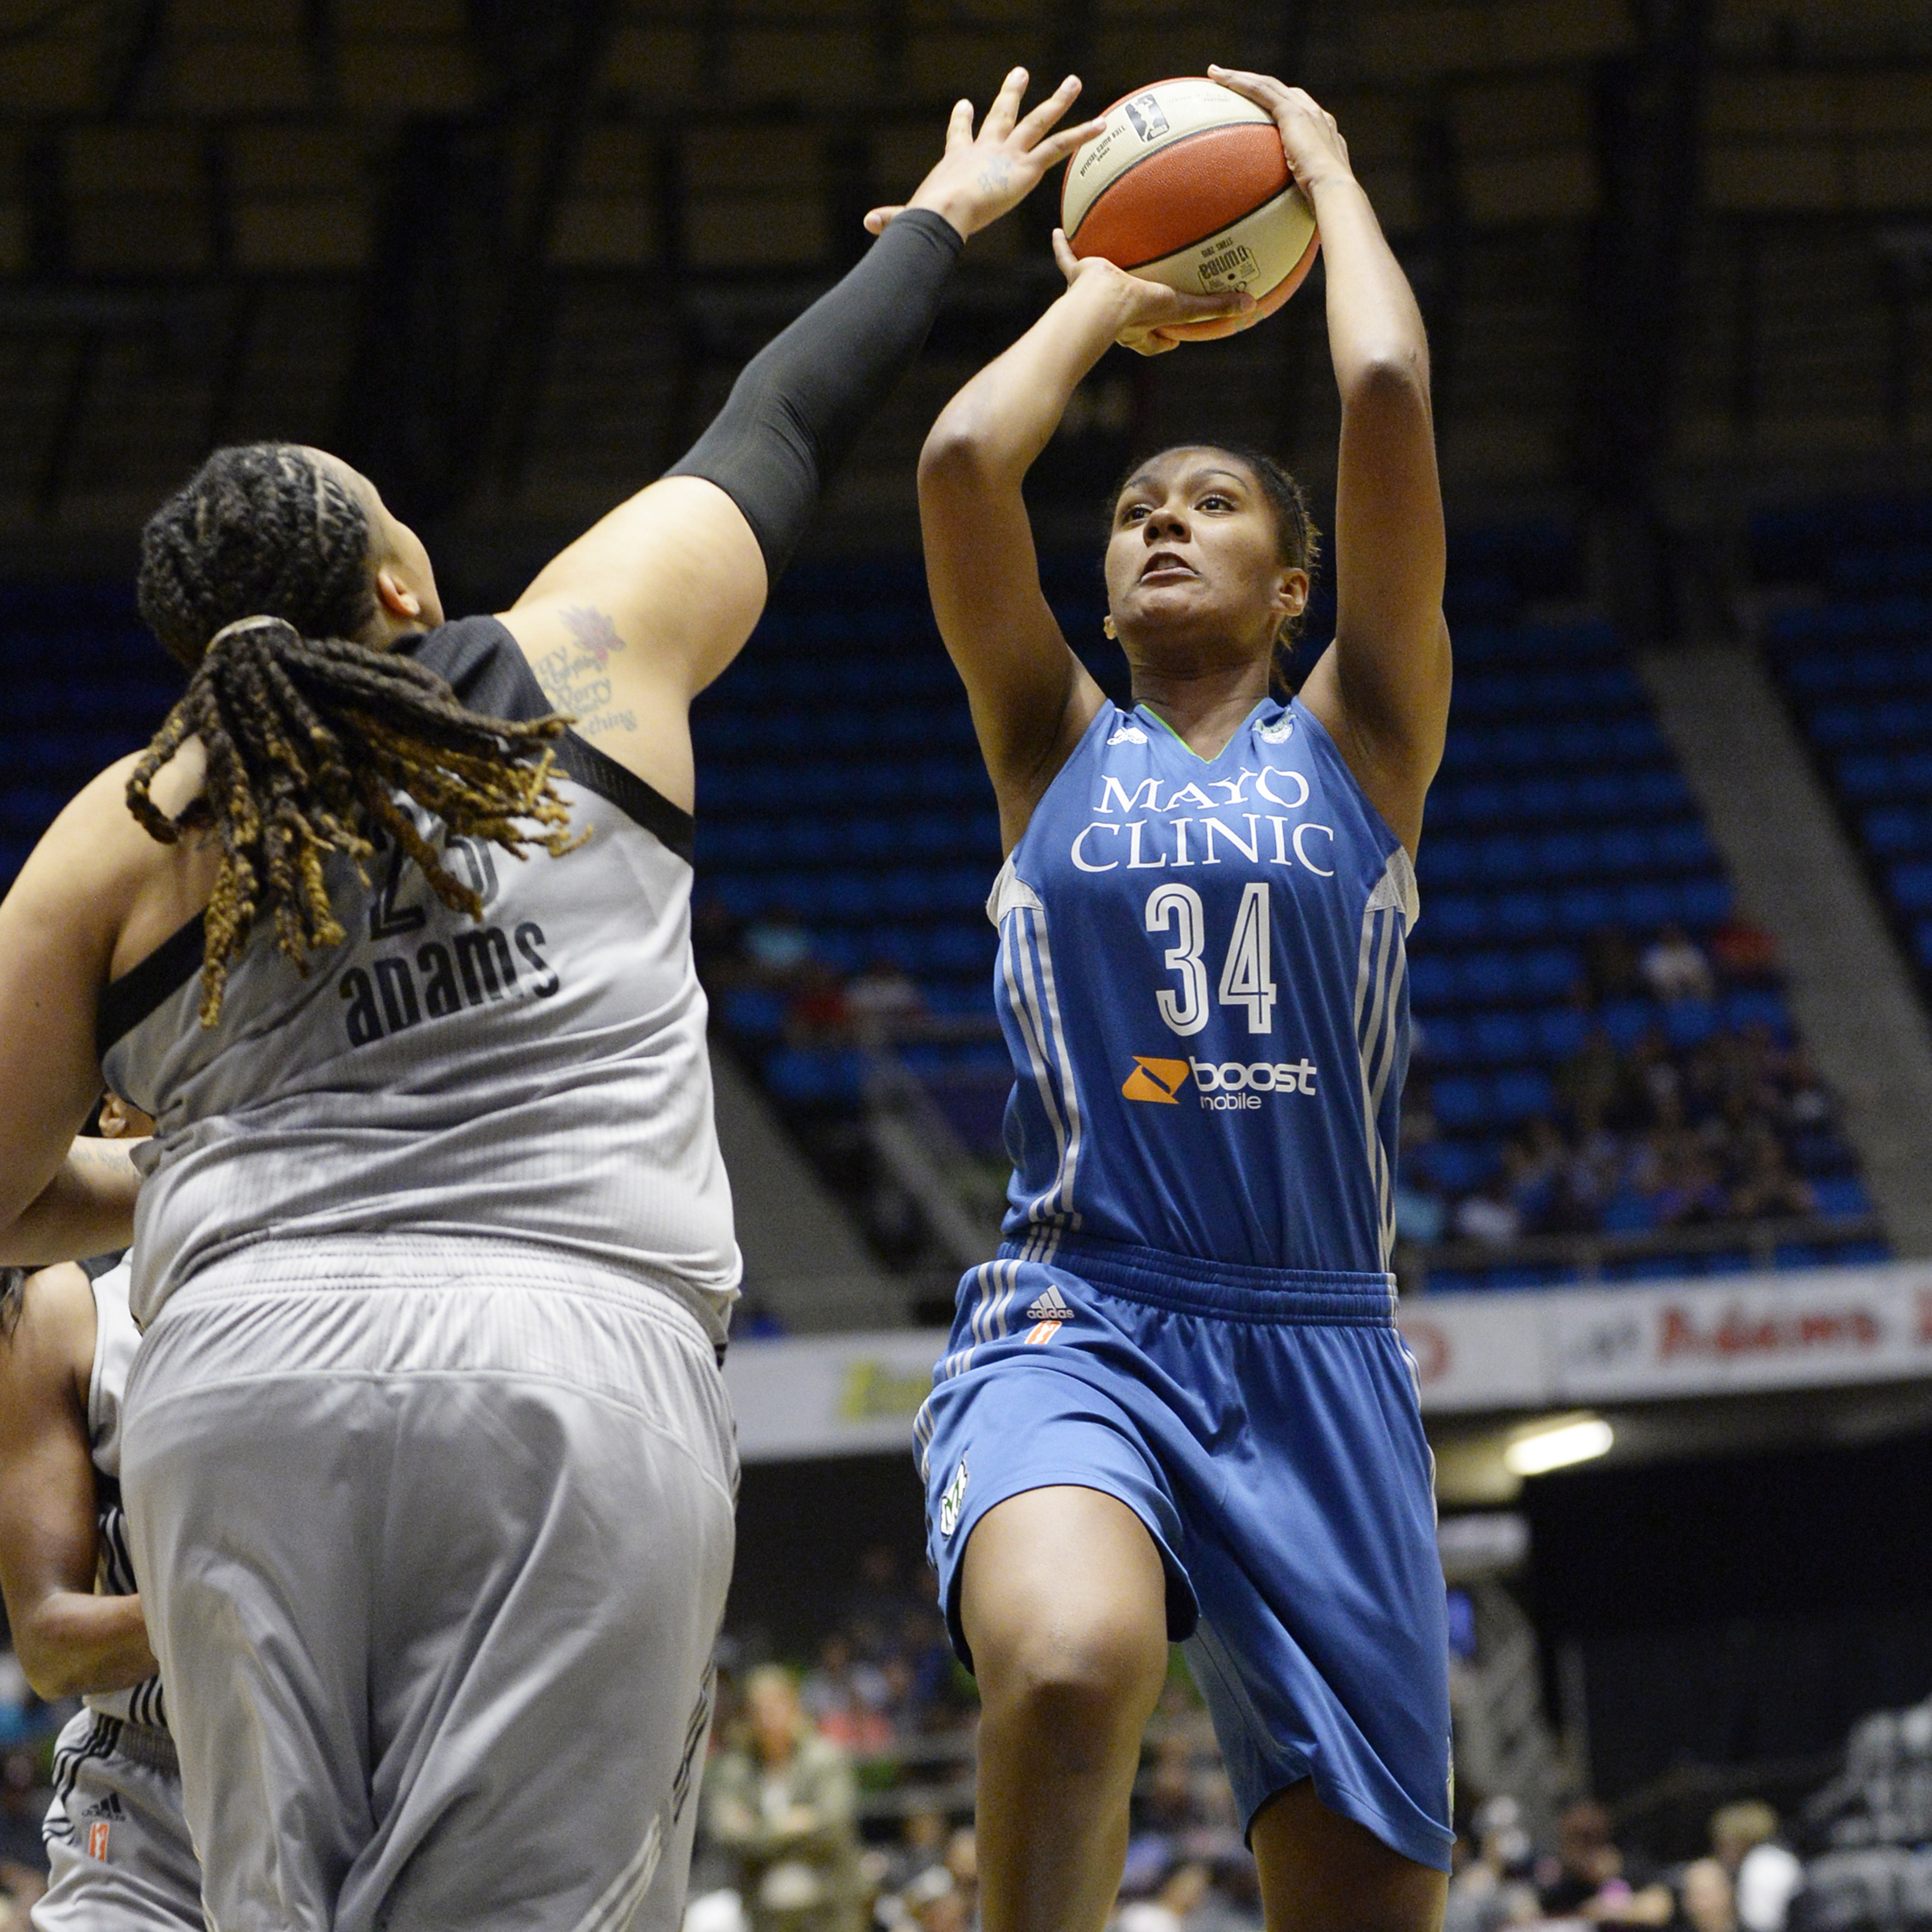 Lynx center Damiris Dantas came off the bench to score seven points to go with her three rebounds and three assists to help fuel the Lynx to a 74-59 victory over the San Antonio Stars on Friday night in San Antonio.